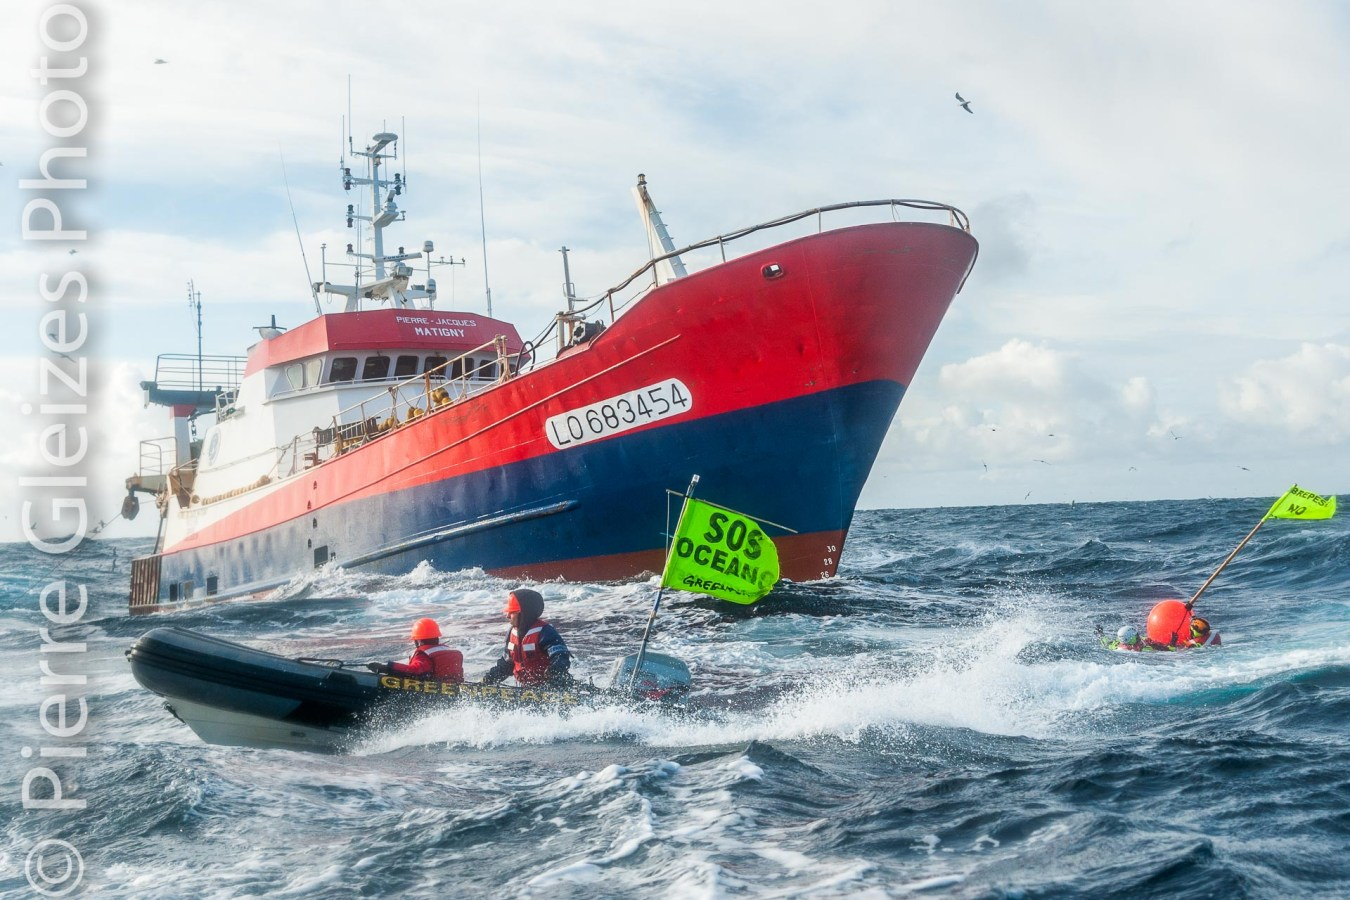 "Action de l'equipage de l'Arctic Sunrise de  Greenpeace a 60 km au large de l'Irlande pour protester contre la peche au chalut par 1000 metres de fond. Les militants se sont mis a l'eau devant le bateau chalutier francais Pierre Jacques Matigny de Lorient travaillant pour la Scapeche, fournisseur des magasins Intermarche les Mousquetaires. Poissons surpeche banderole  "" SOS Oceans, stop a la surpeche, Sobrepesca No ""  Activists and crew members of the Greenpeace ship Arctic Sunrise protesting deep sea trawling at 1000 meters below sea level in front of french fishing boat Pierre-Jacques Matigny registered in Lorient and operated by the Scapeche for Intermarche supermarket chain. 60 miles North West of the north tip of Ireland.  In 2011, the Greenpeace's ships Esperanza and Artic Sunrise undertook two high sea campaigns in the North East Atlantic.  French and Spanish vessels are involved in deep sea fishery   activities particularly destructive, which are a perfect example of the bad fisheries management allowed by the European Common Fisheries Policy."